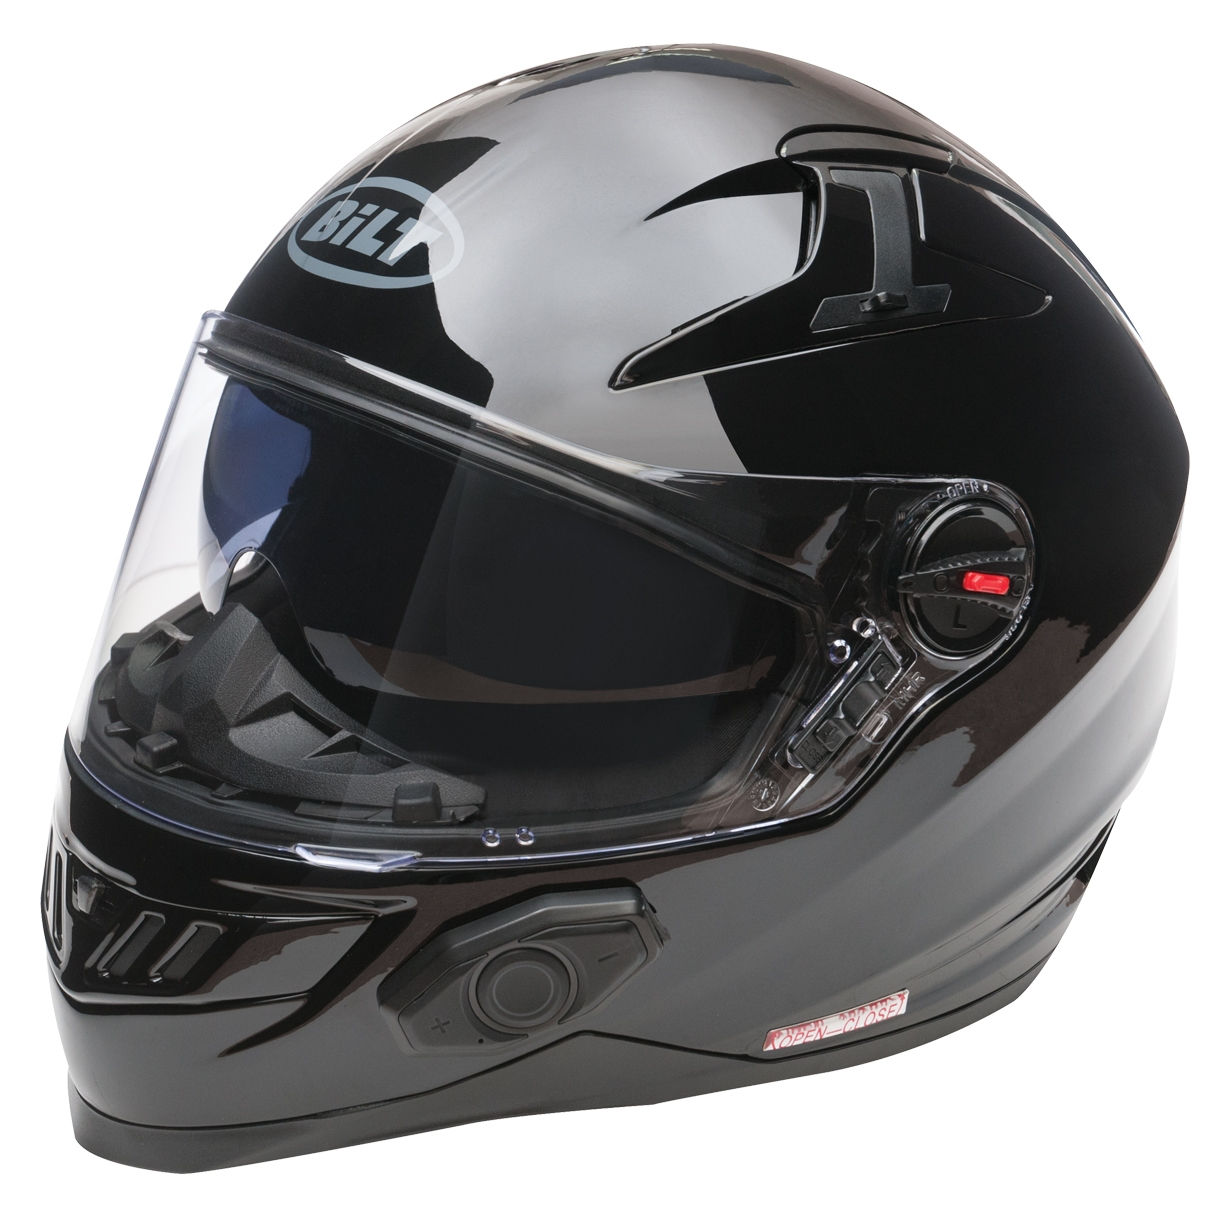 Full Face Motorcycle Helmets Cycle Gear